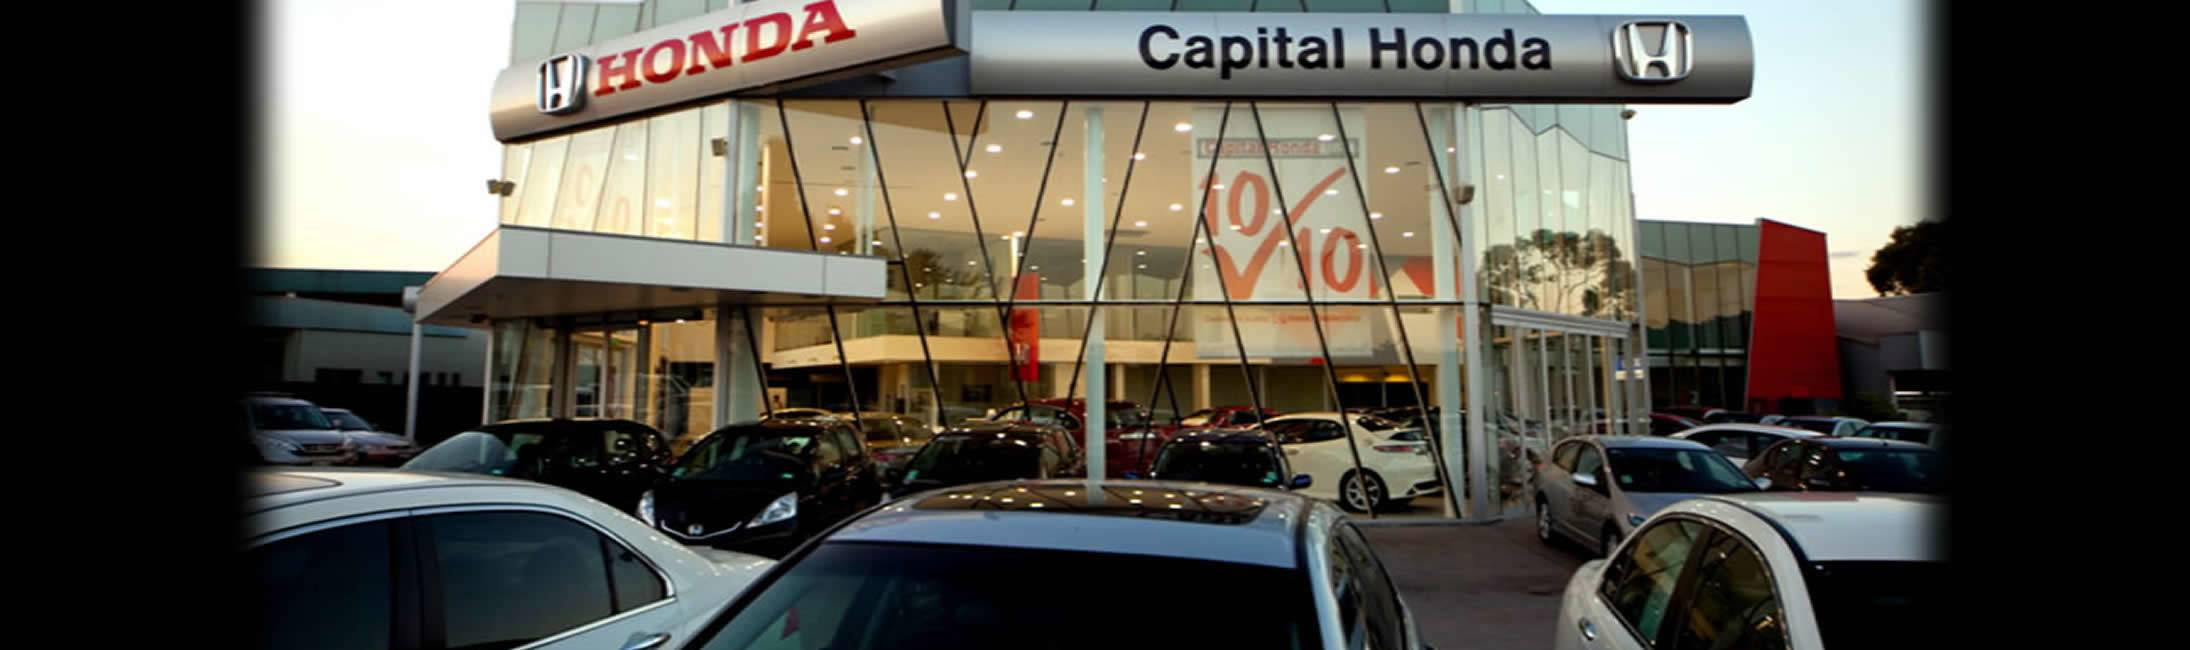 Capital Honda, Canberra ACT